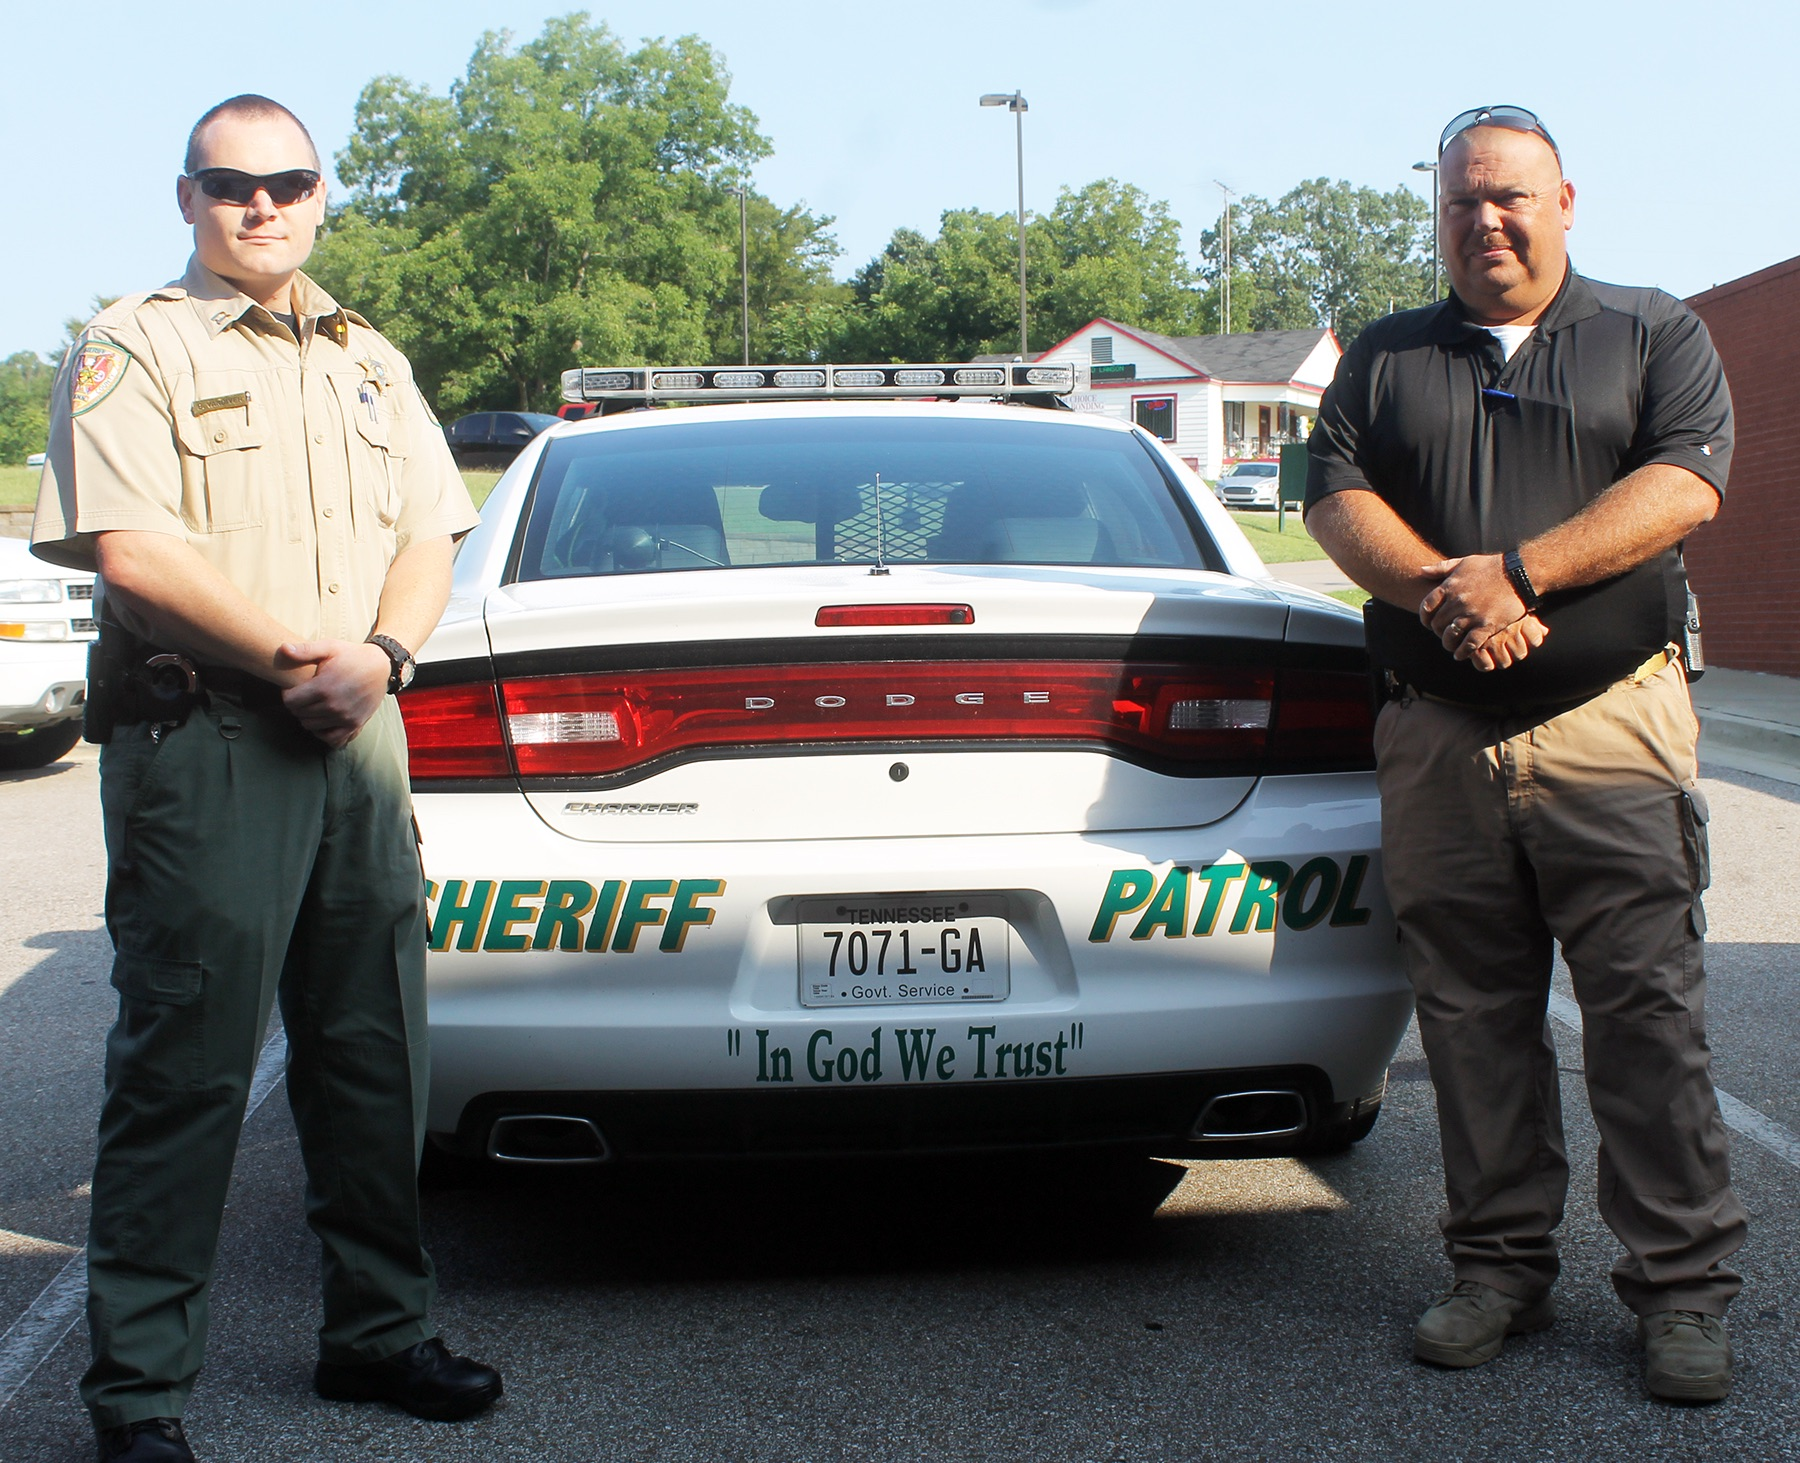 Hardeman County Sheriff's Office – Making Hardeman County a Safer